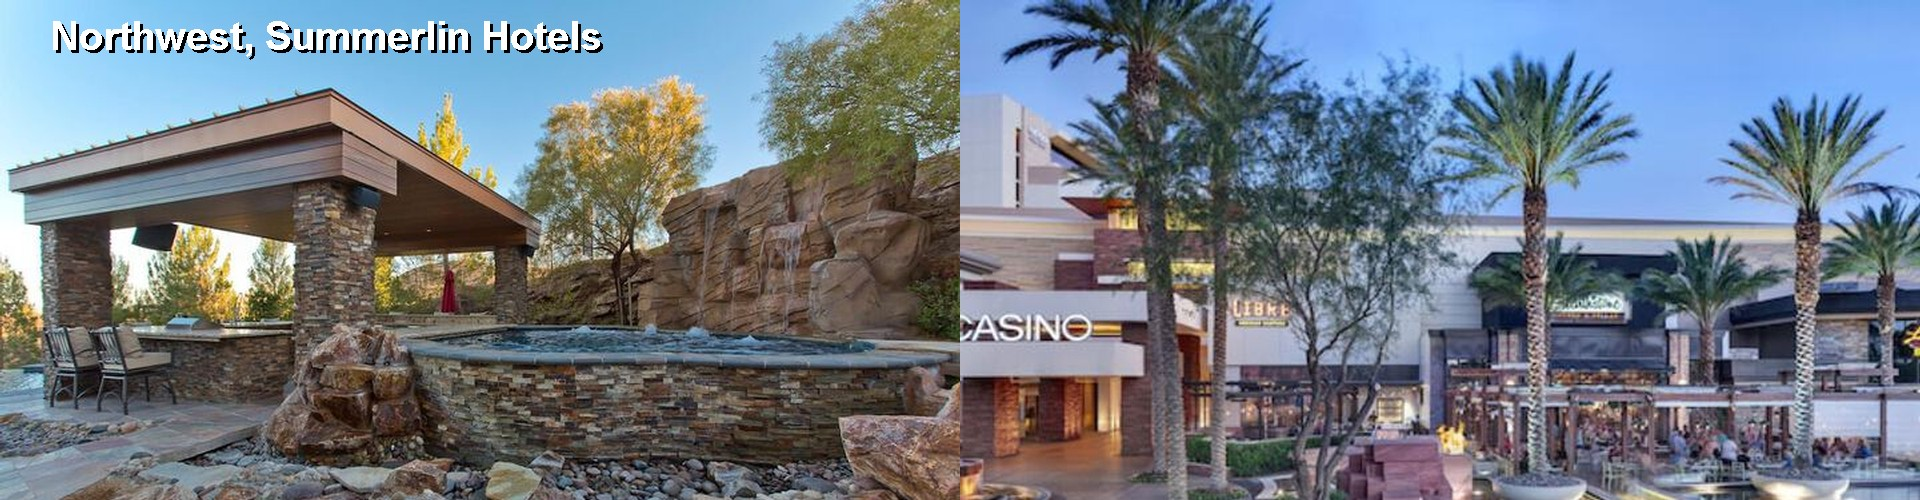 5 Best Hotels near Northwest, Summerlin